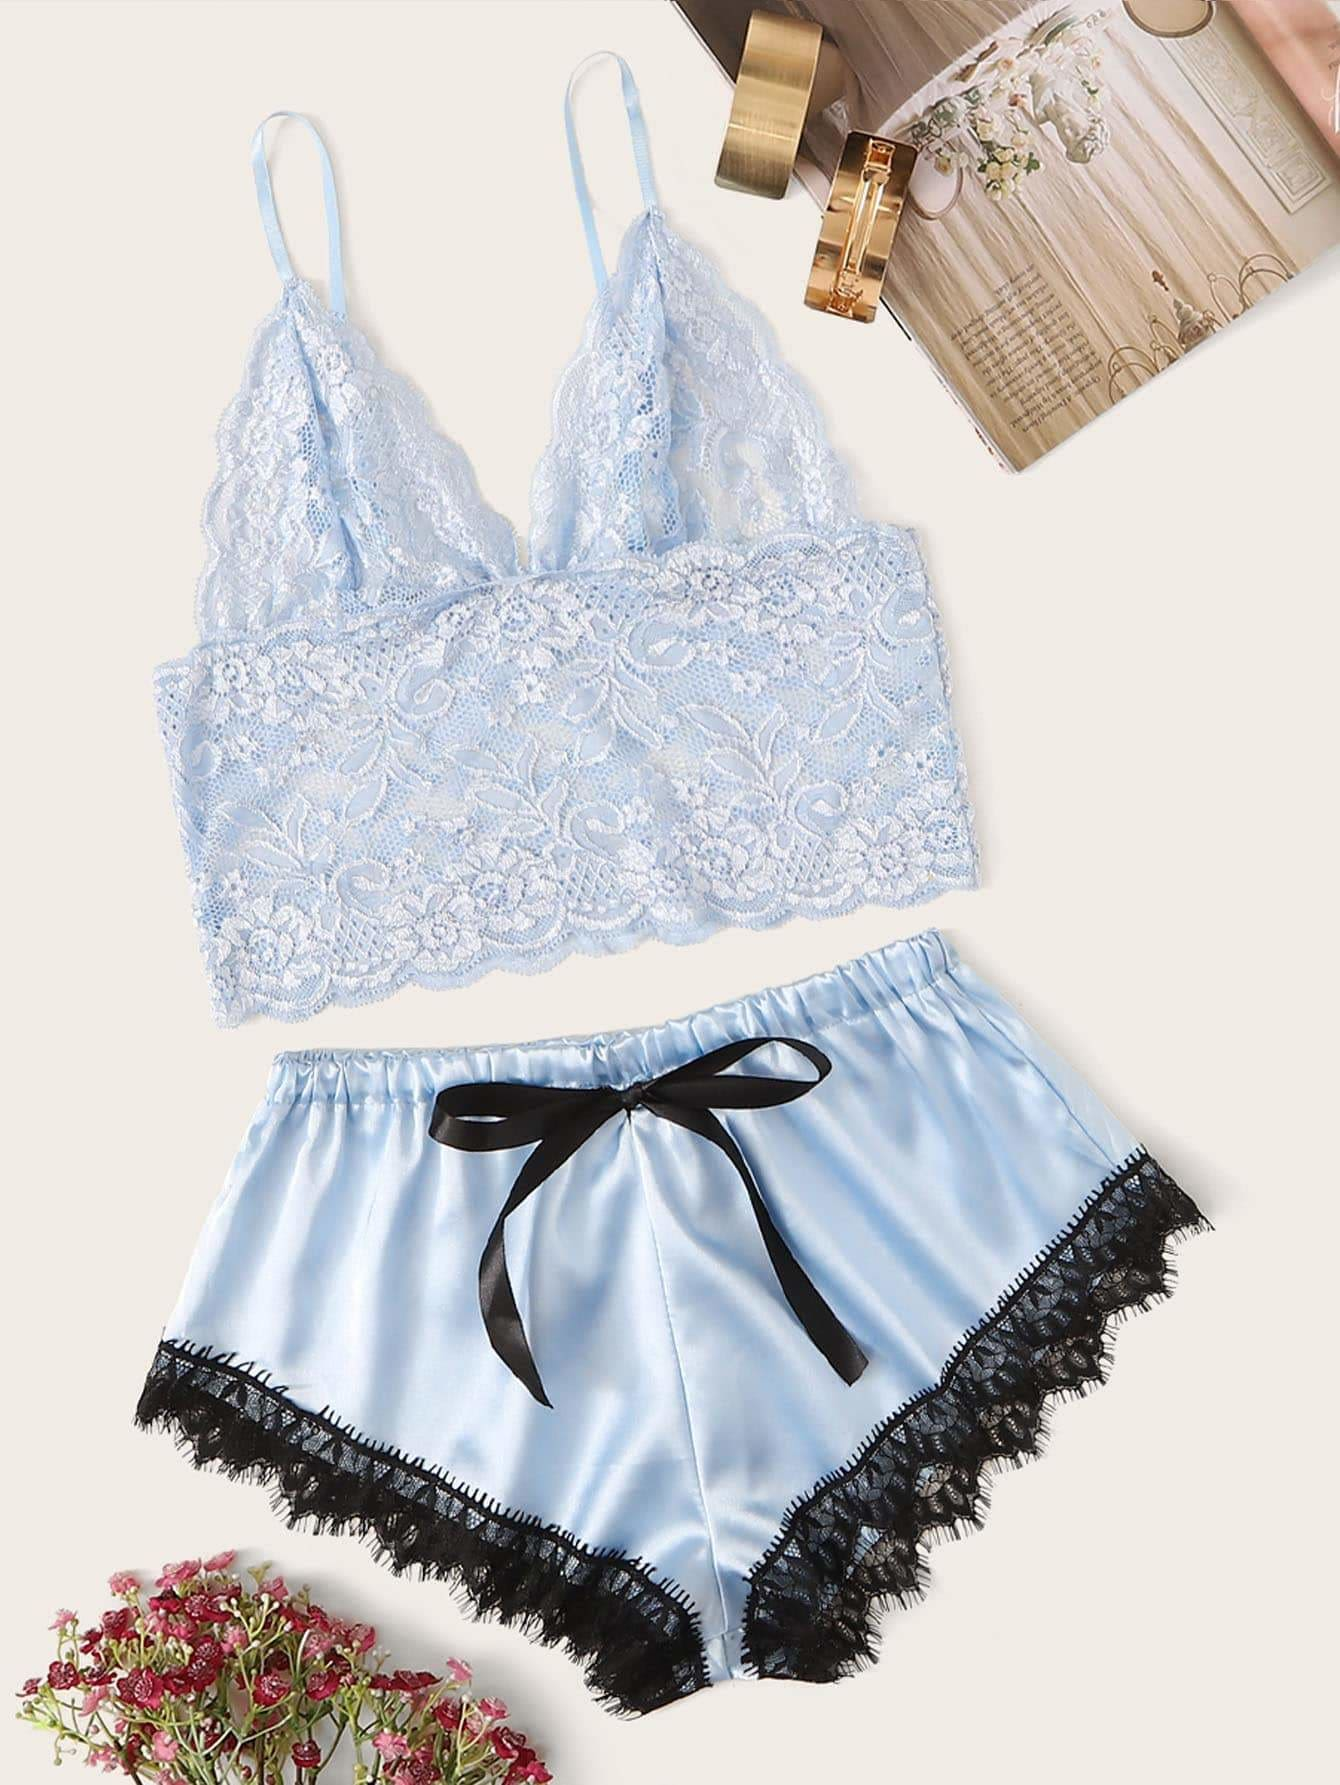 Floral Lace Bralette With Satin Shorts - S - Nightwears